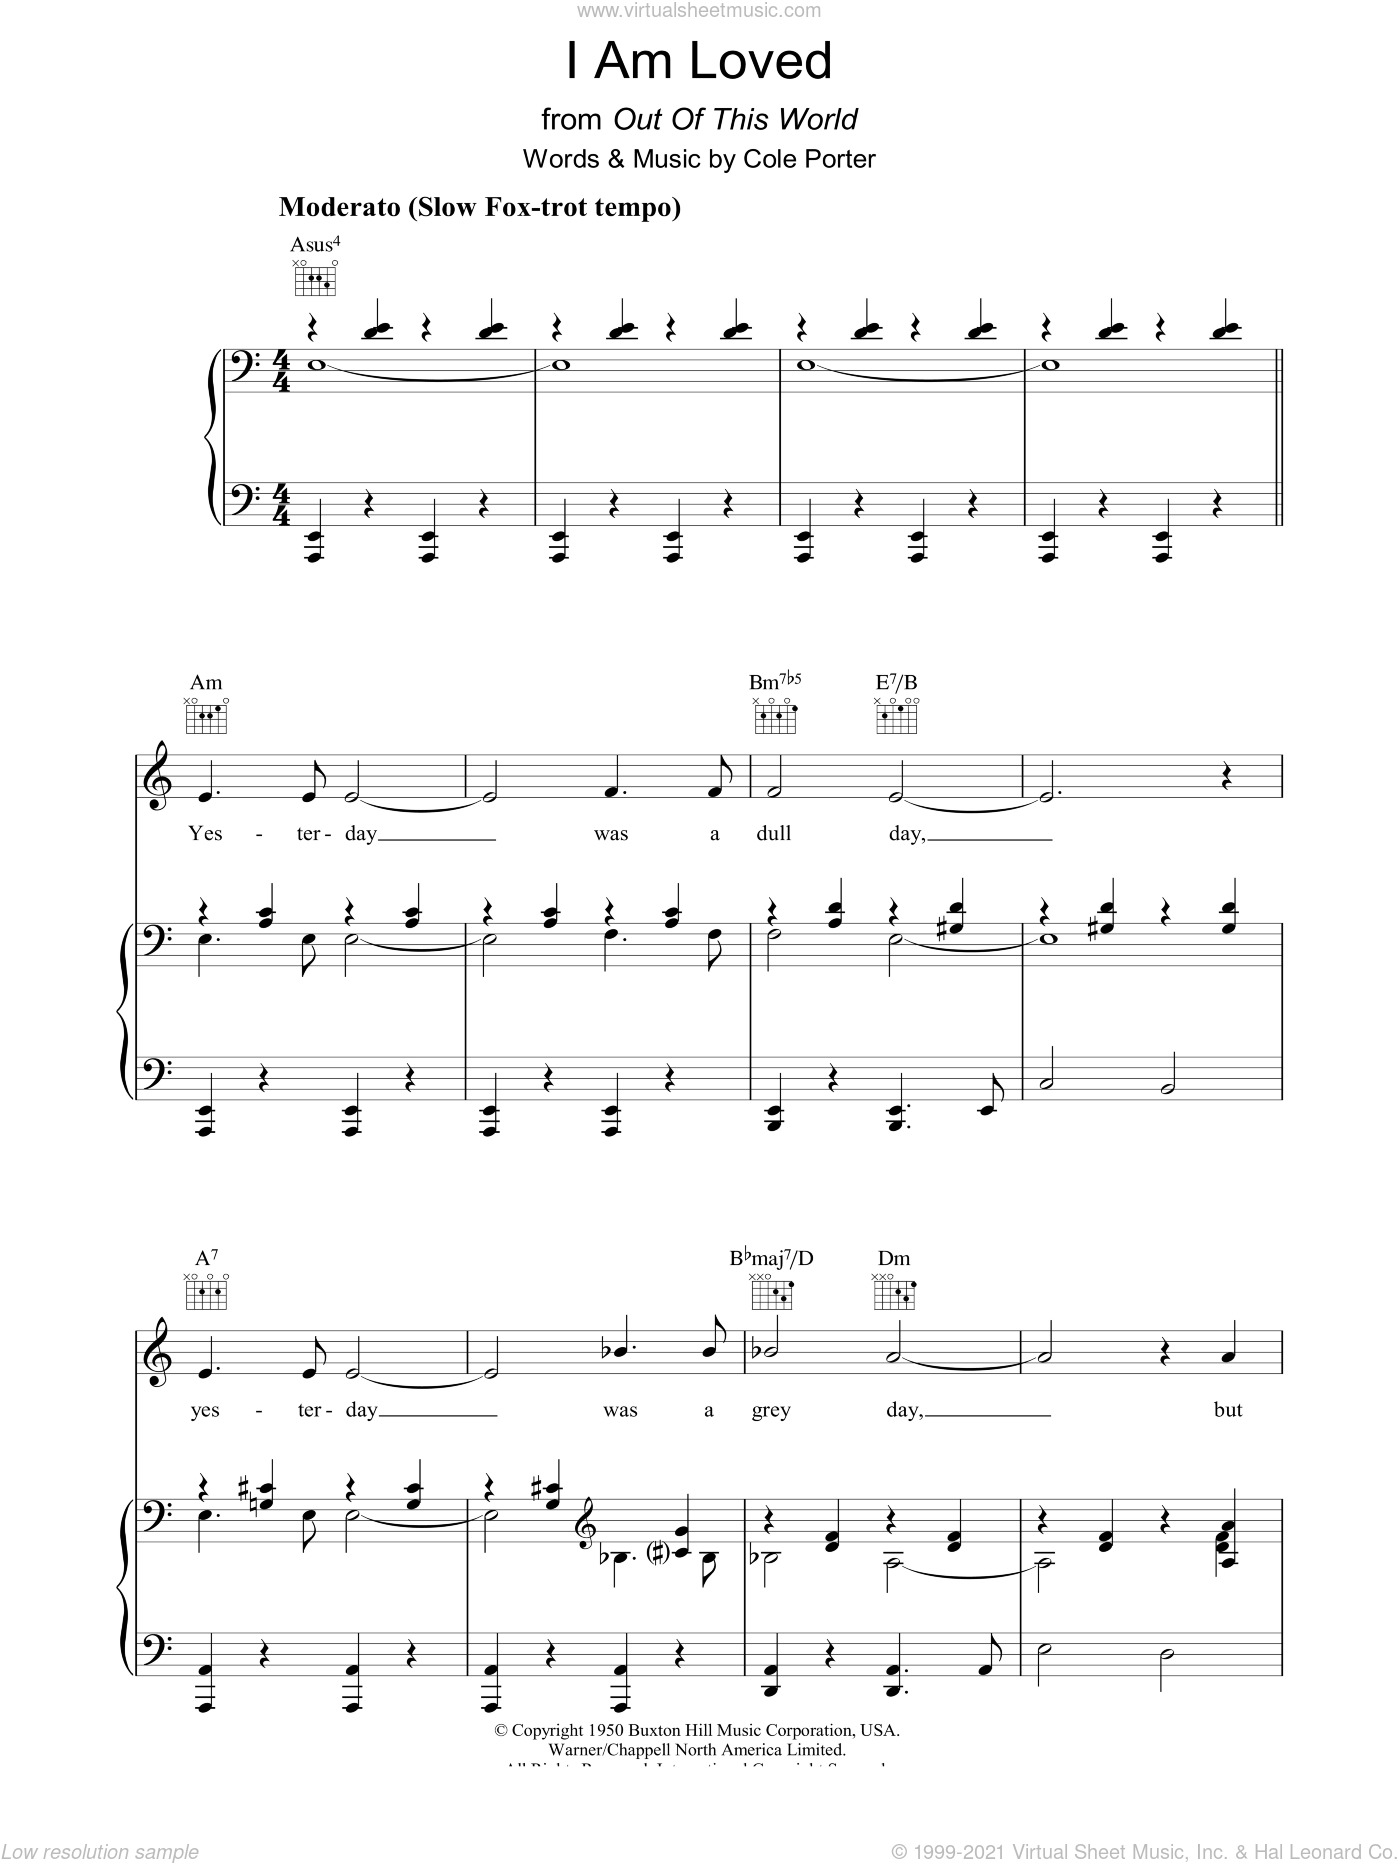 I Am Loved sheet music for voice, piano or guitar by Cole Porter, intermediate skill level